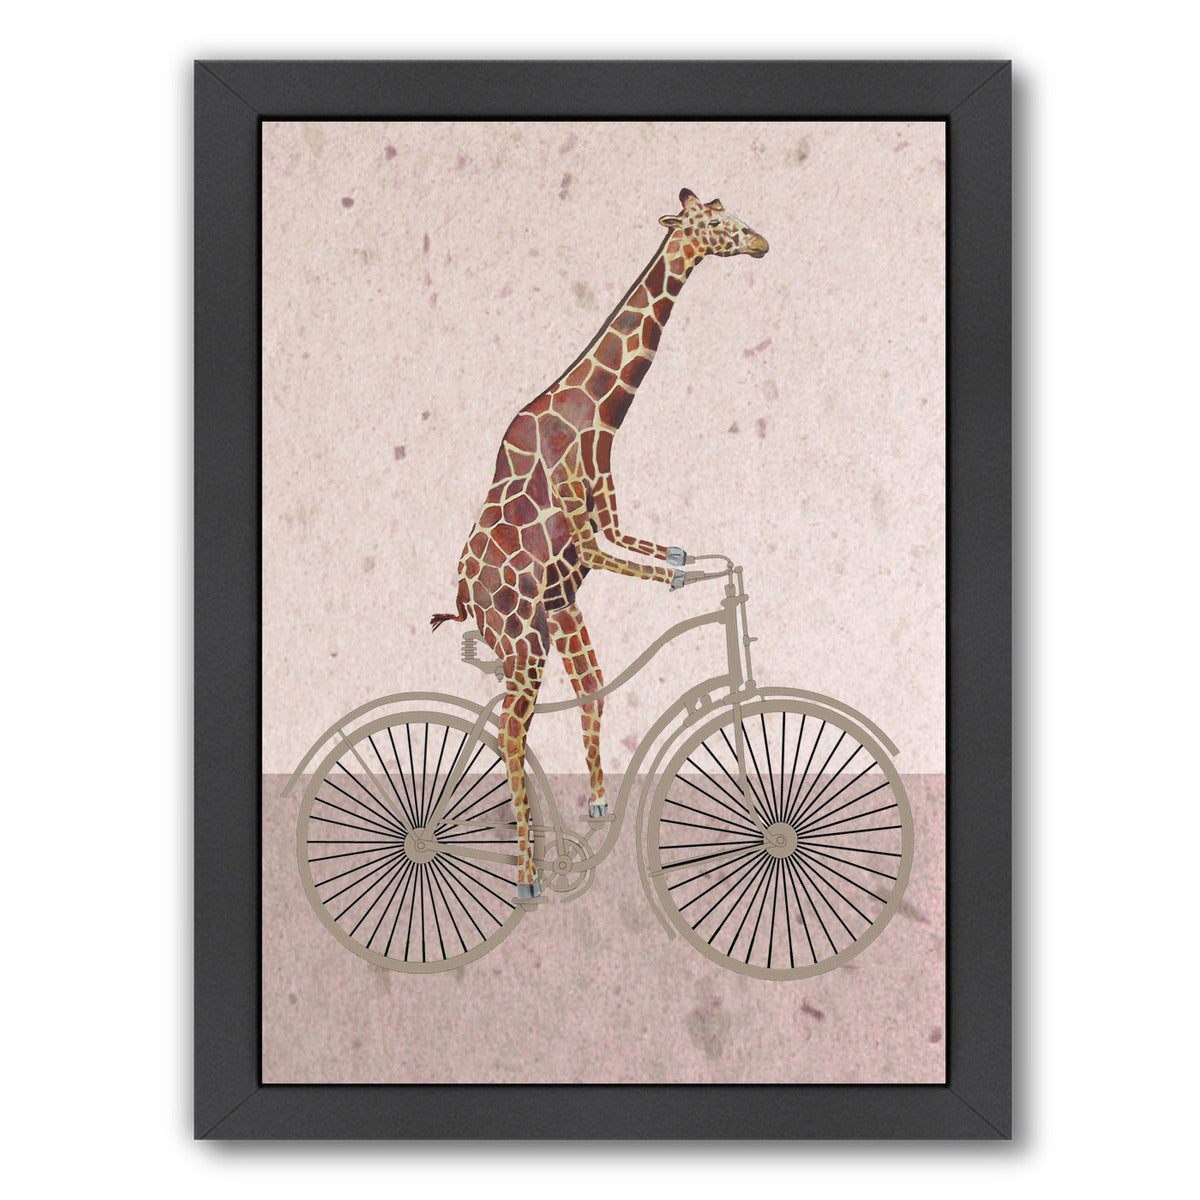 "Giraffe On Bicycle By Coco De Paris - Black Framed Print, Wall Art, Coco de Paris, 8"" x 10"""